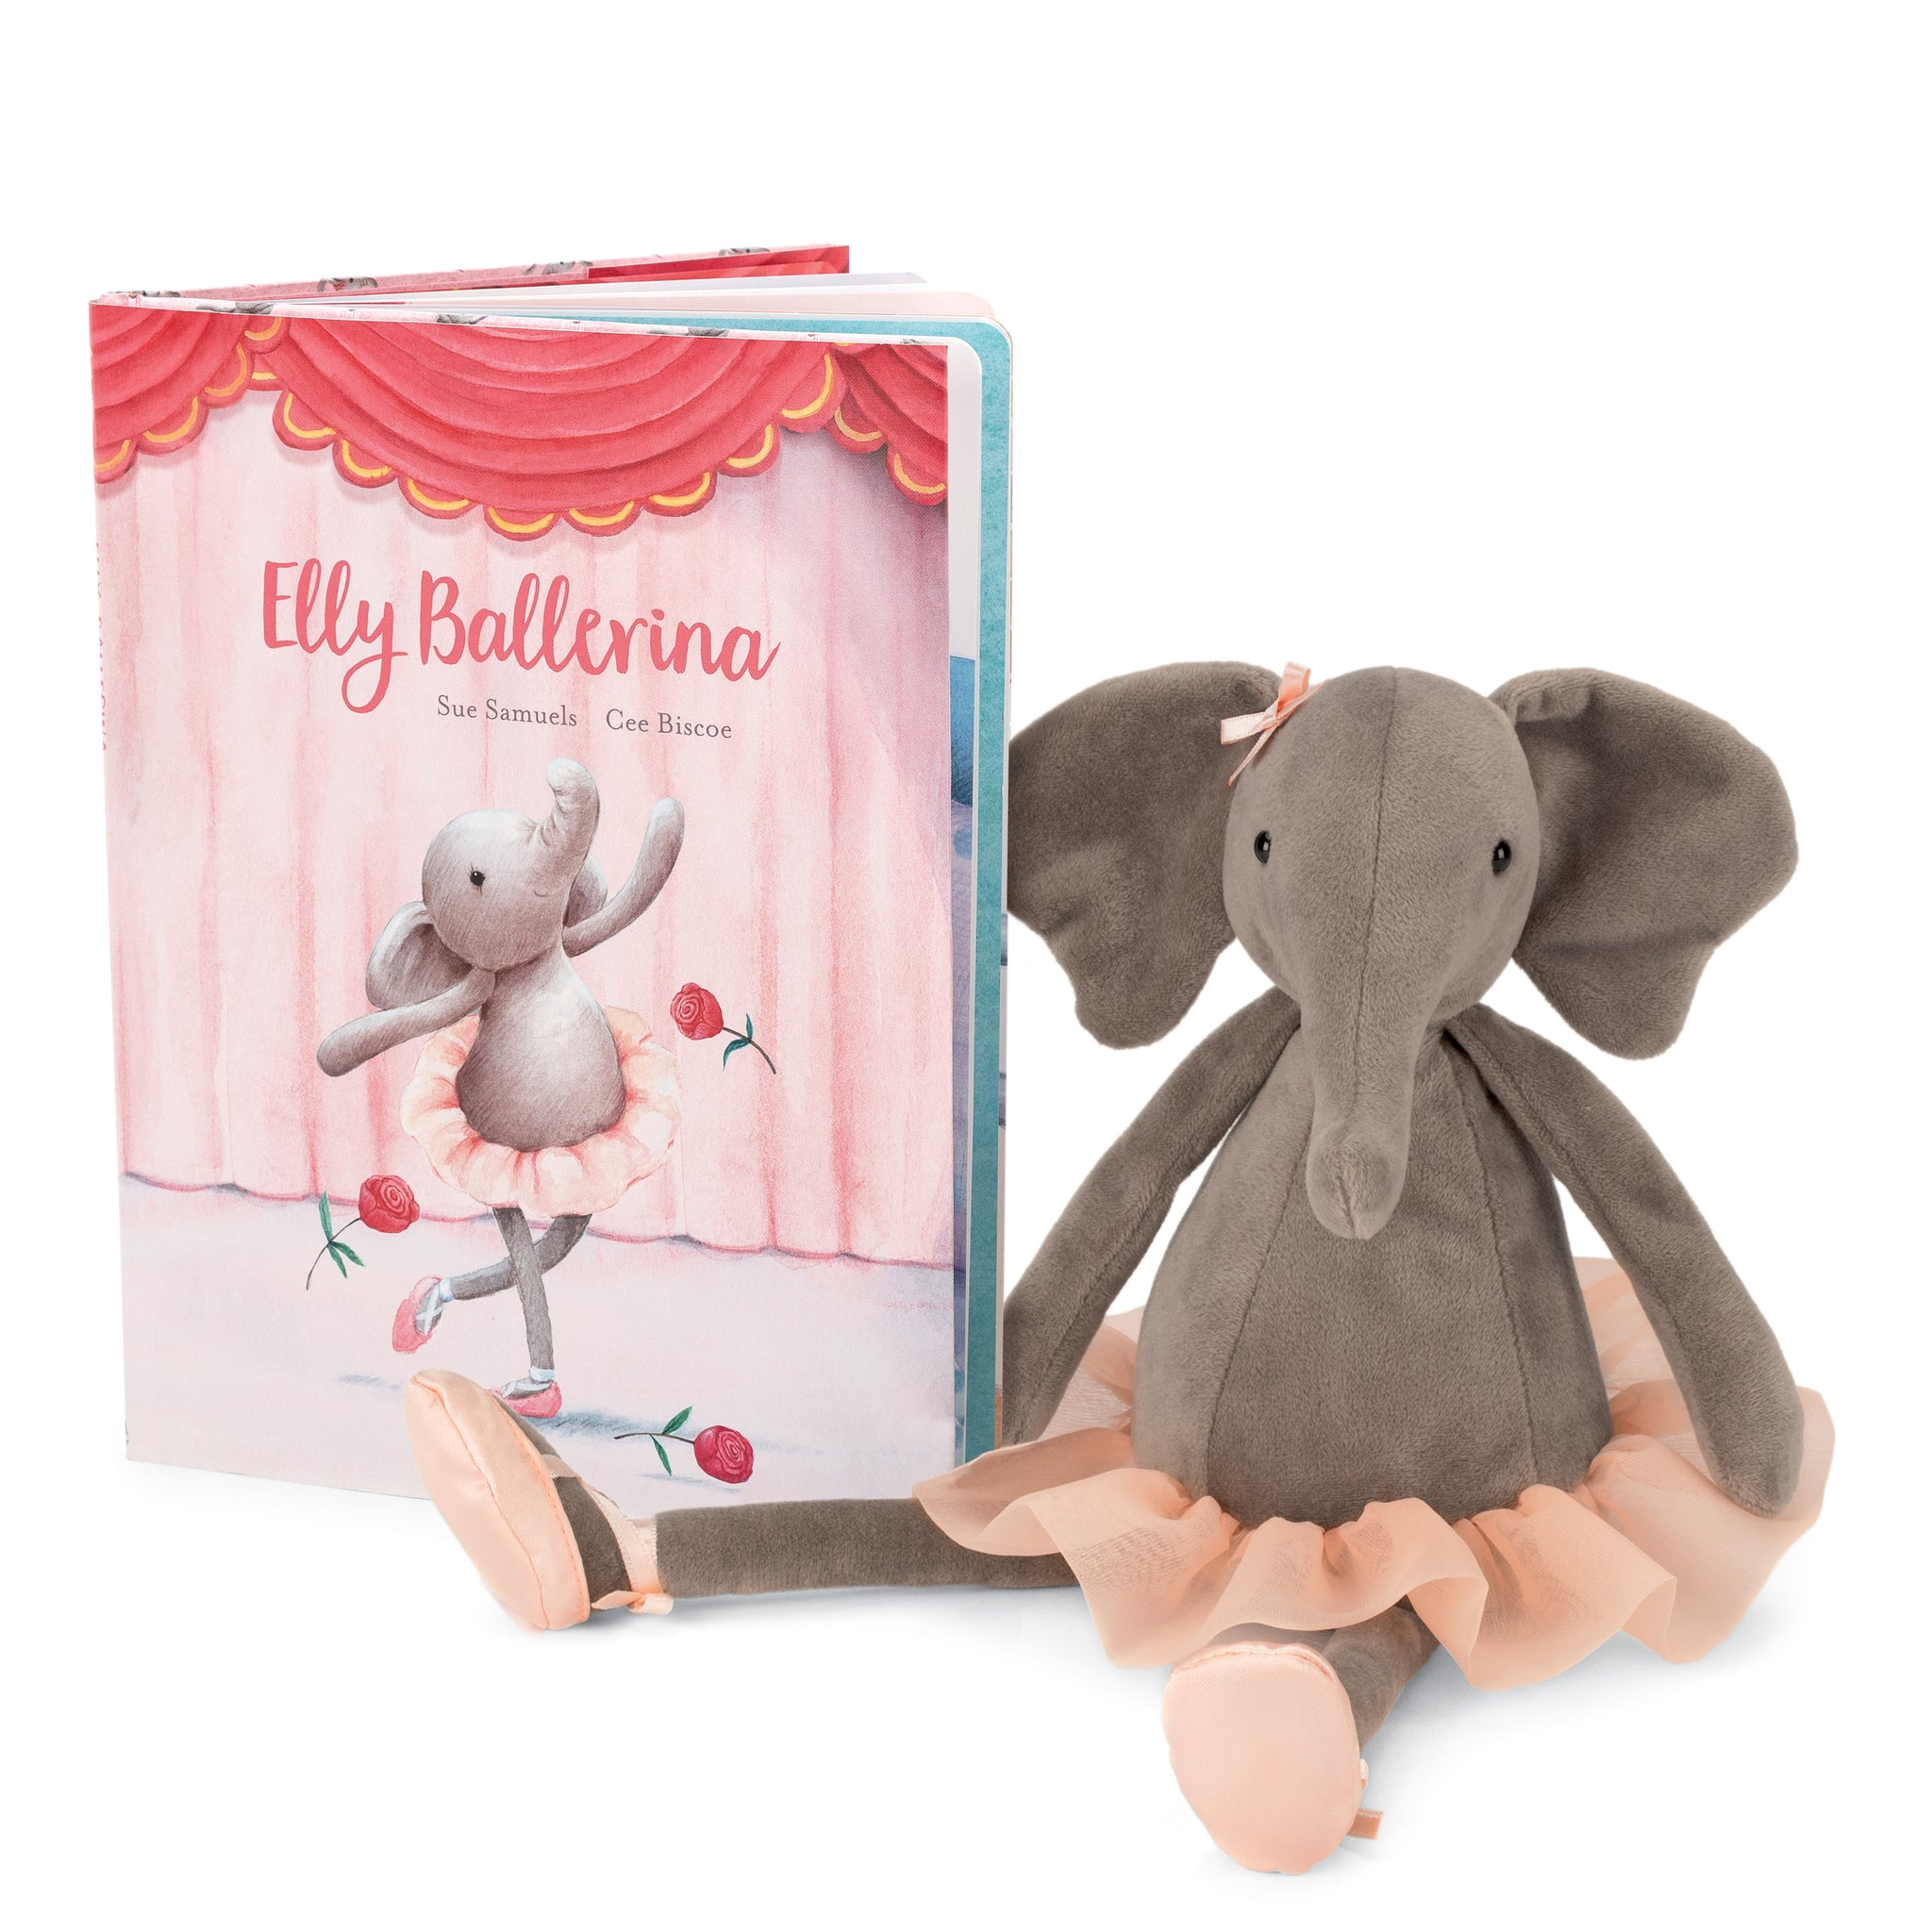 """Elly Ballerina"" Book and Ellie Elephant Stuffed Animal"